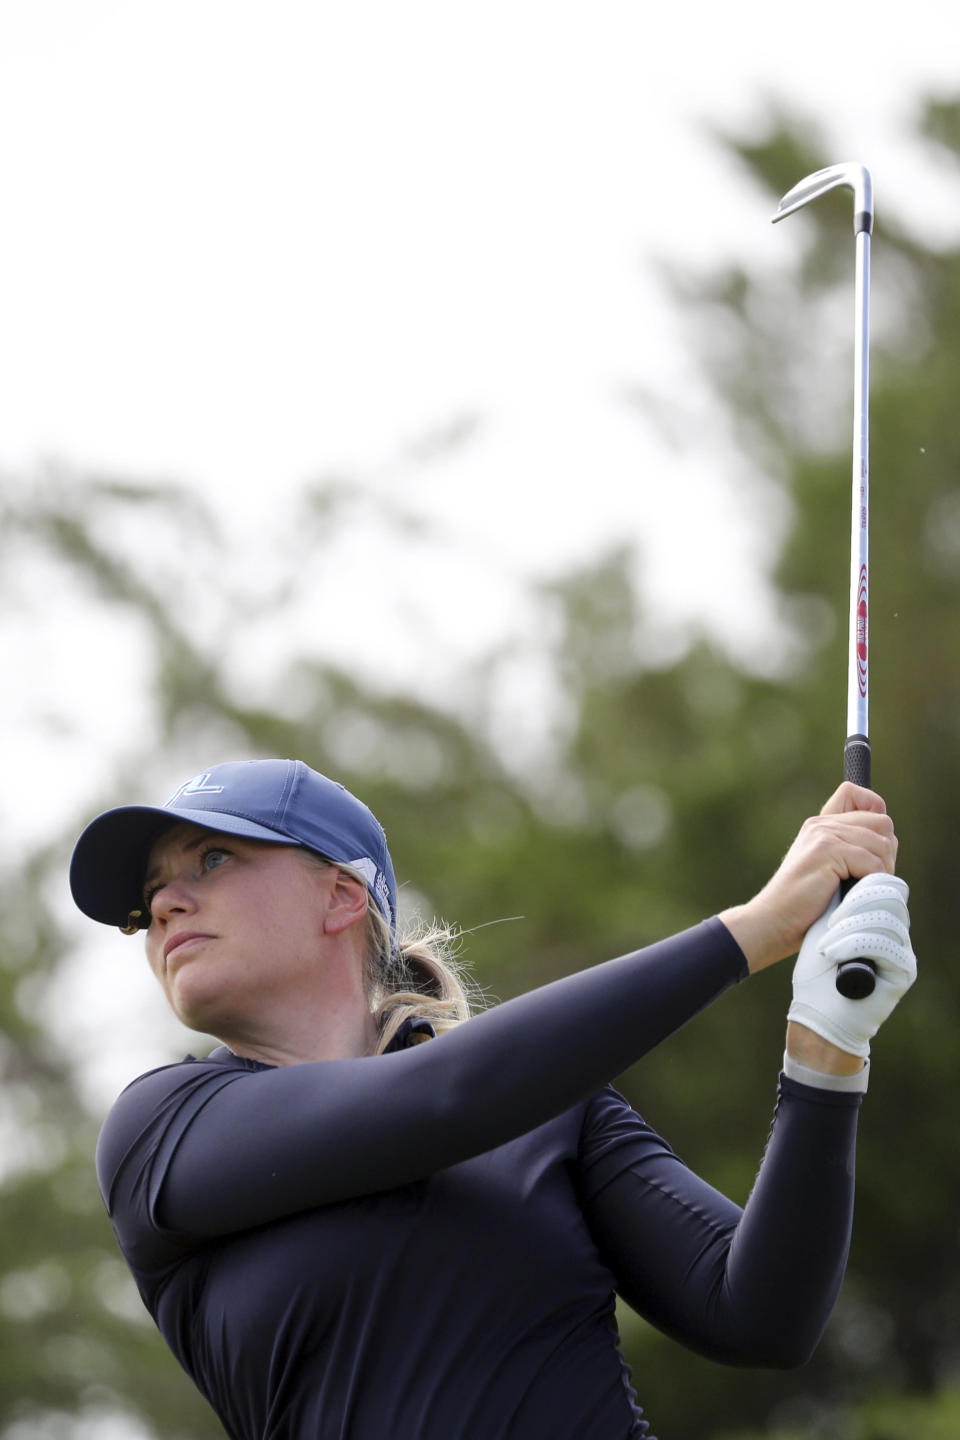 Matilda Castren hits off the third tee during the third round of the LPGA Volunteers of America Classic golf tournament in The Colony, Texas, Saturday, July 3, 2021. (AP Photo/Richard W. Rodriguez)